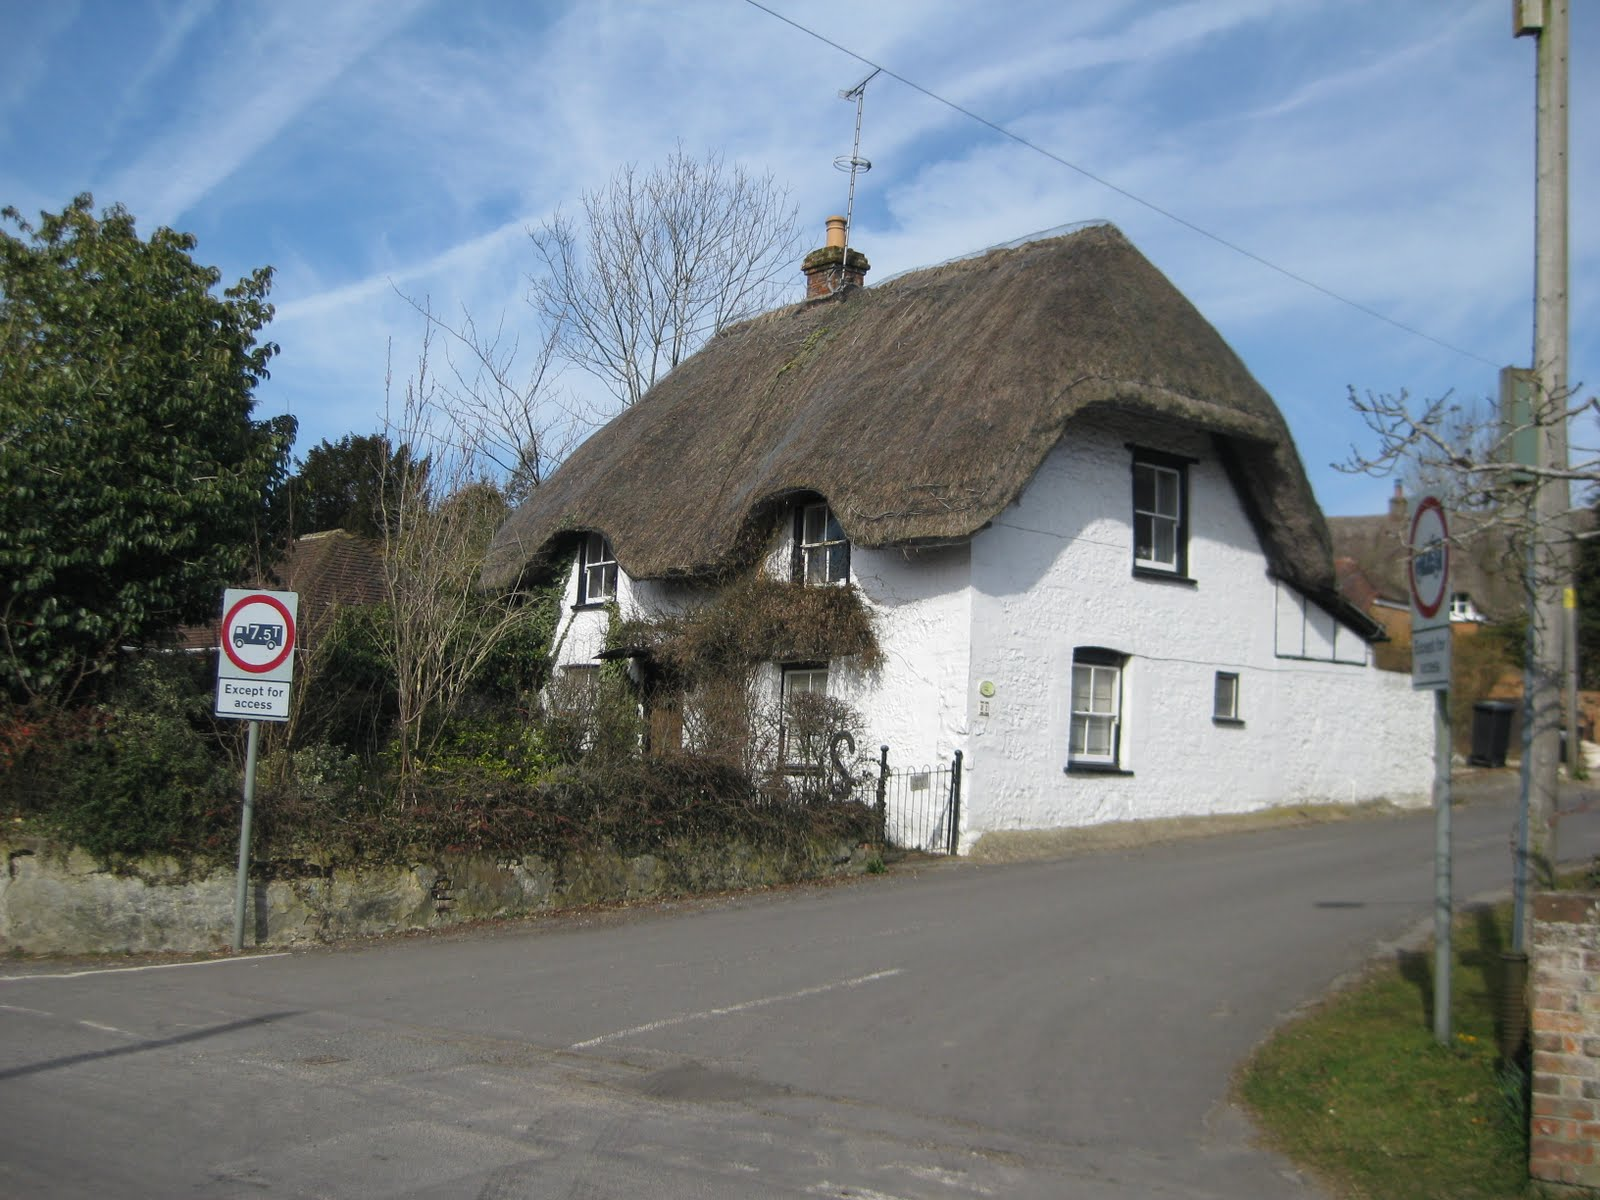 Again, thatched roof